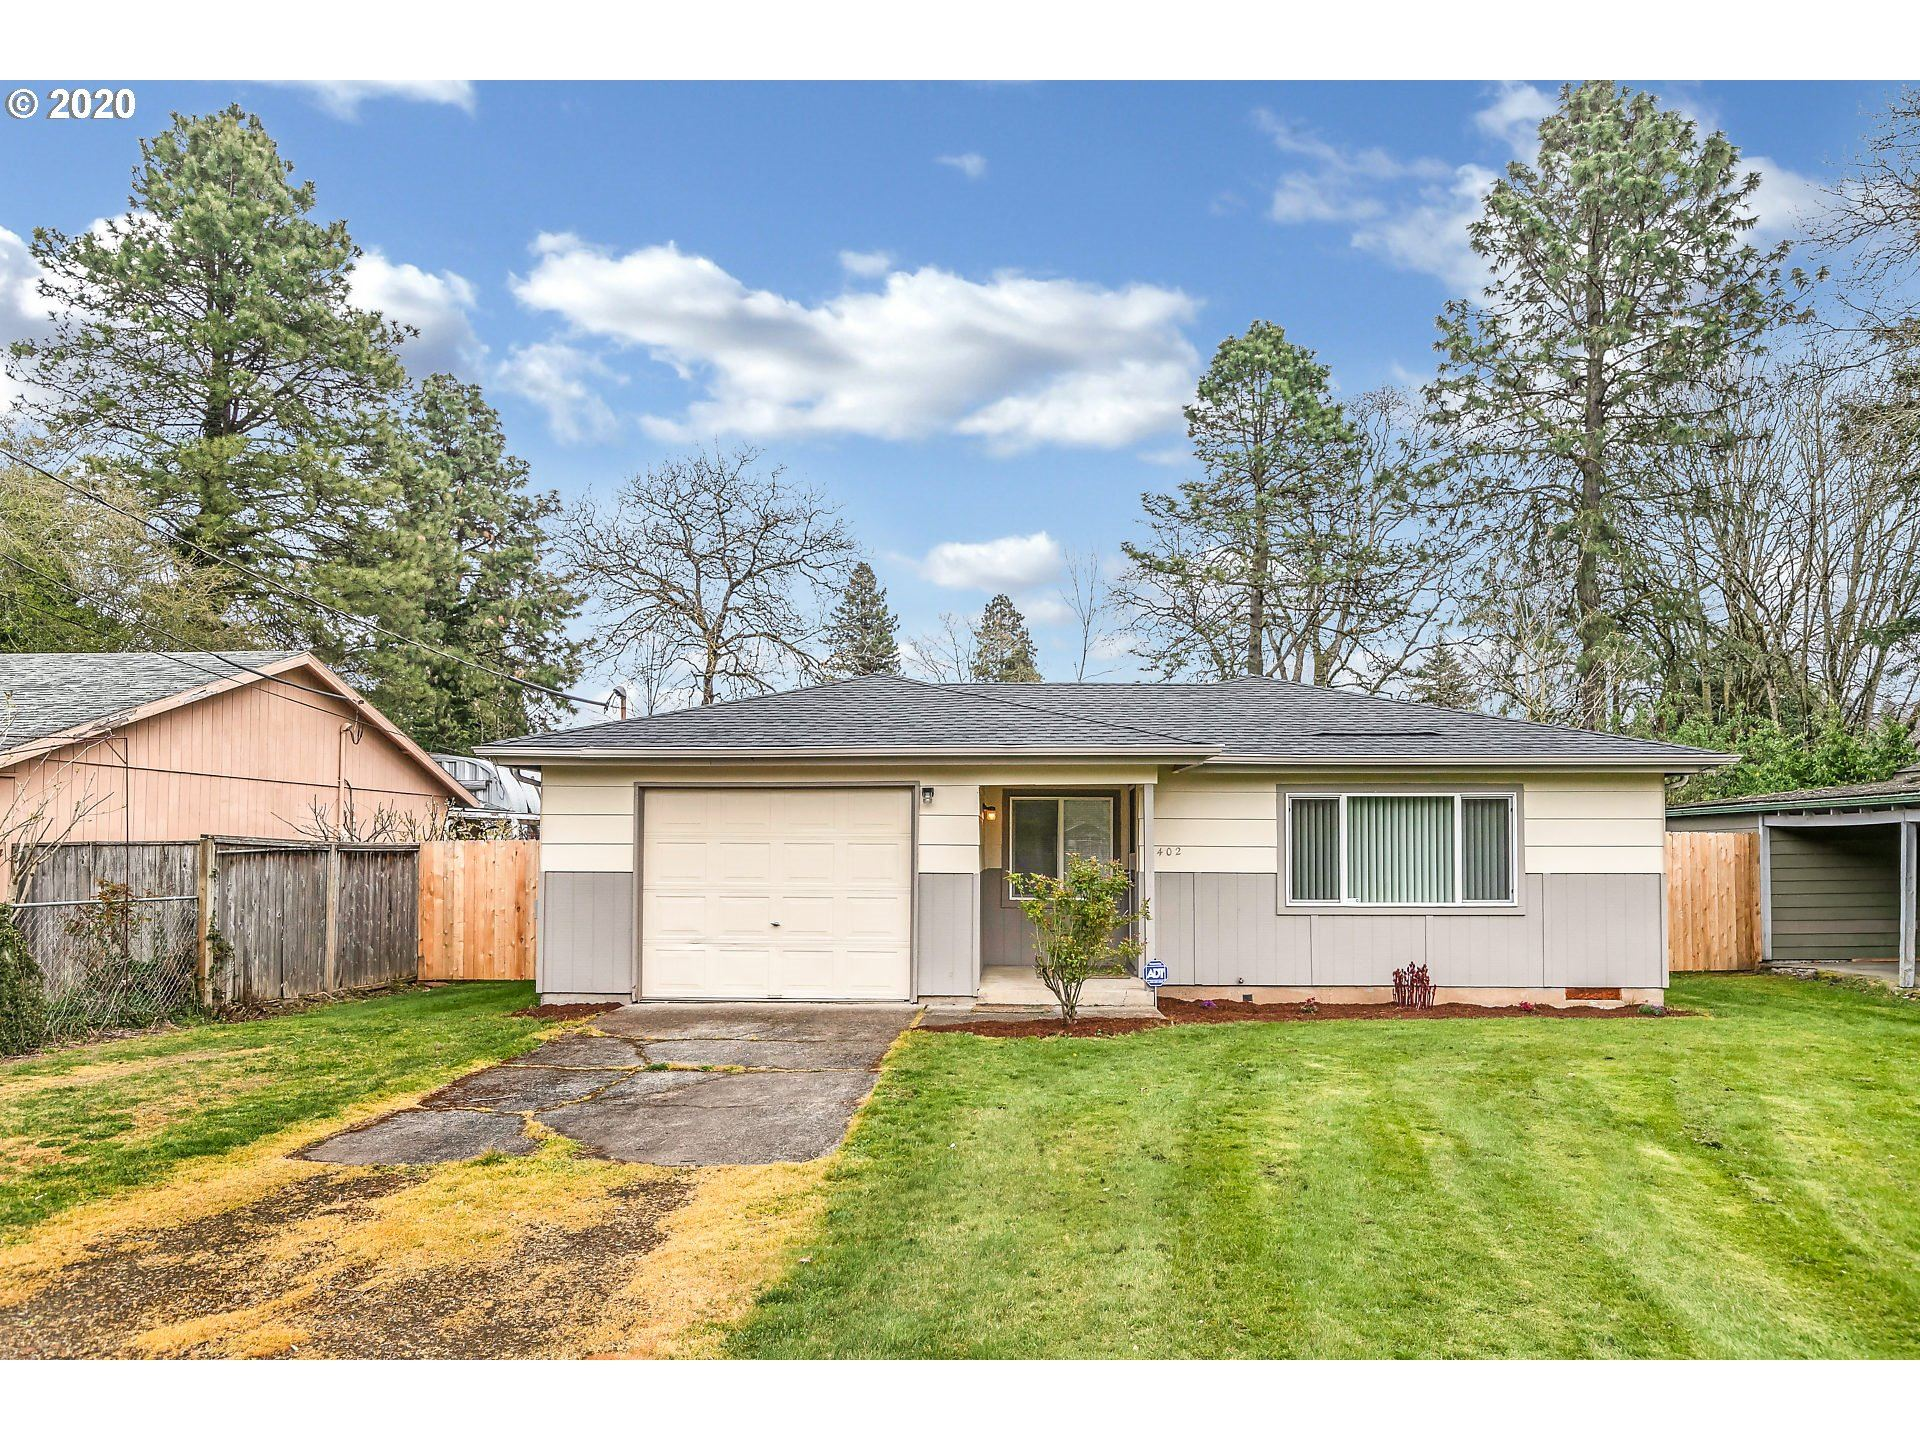 2402 SE 90TH AVE, Portland, OR 97216 - MLS#: 20485654